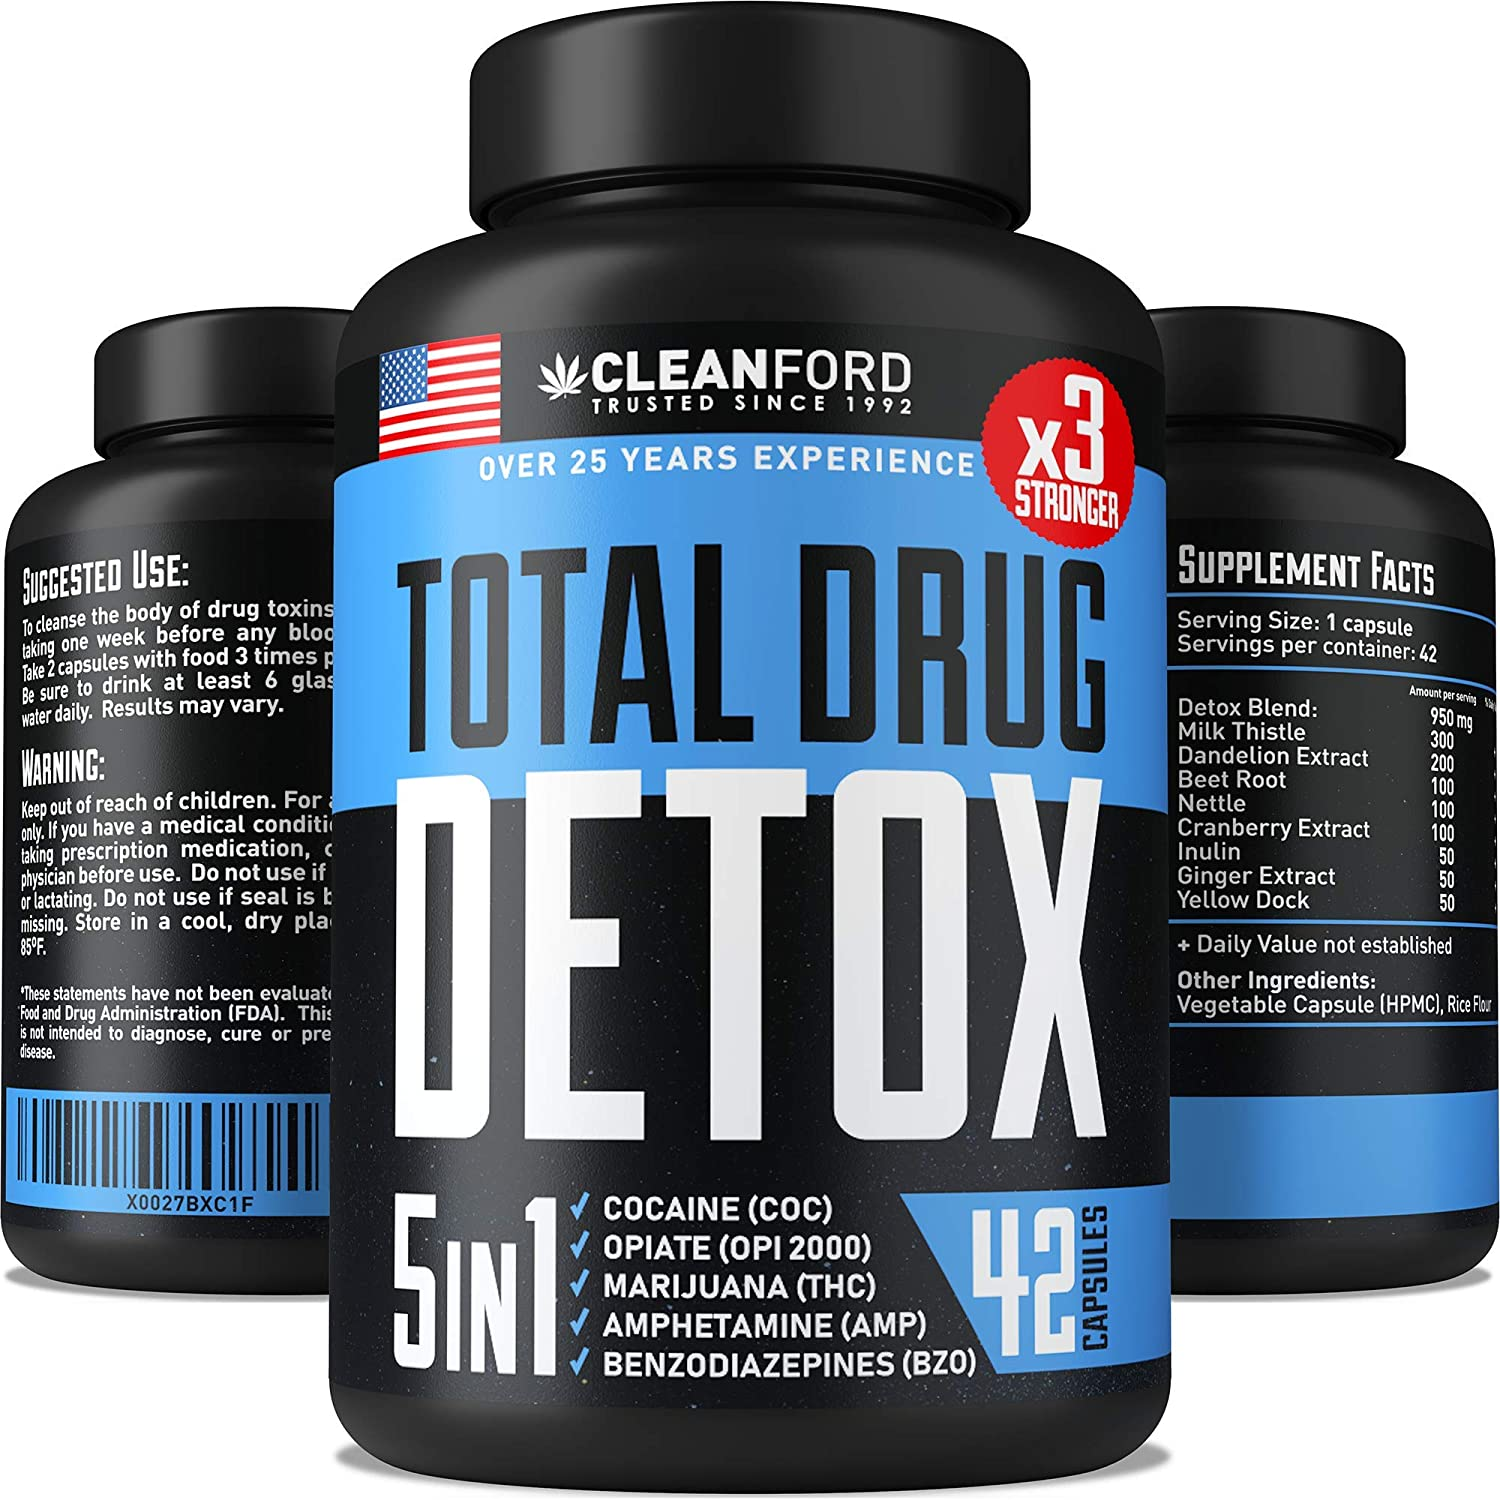 CLEANFORD THC Detox 5-IN-ONE – Premium Drug Cleanse Toxins Remove – Natural Drug Detox Pills – Best THC Cleanse to Live Free – Liver, Urinary Tract Kidney Detox Cleanse – Made in USA – 7-DAY Detox